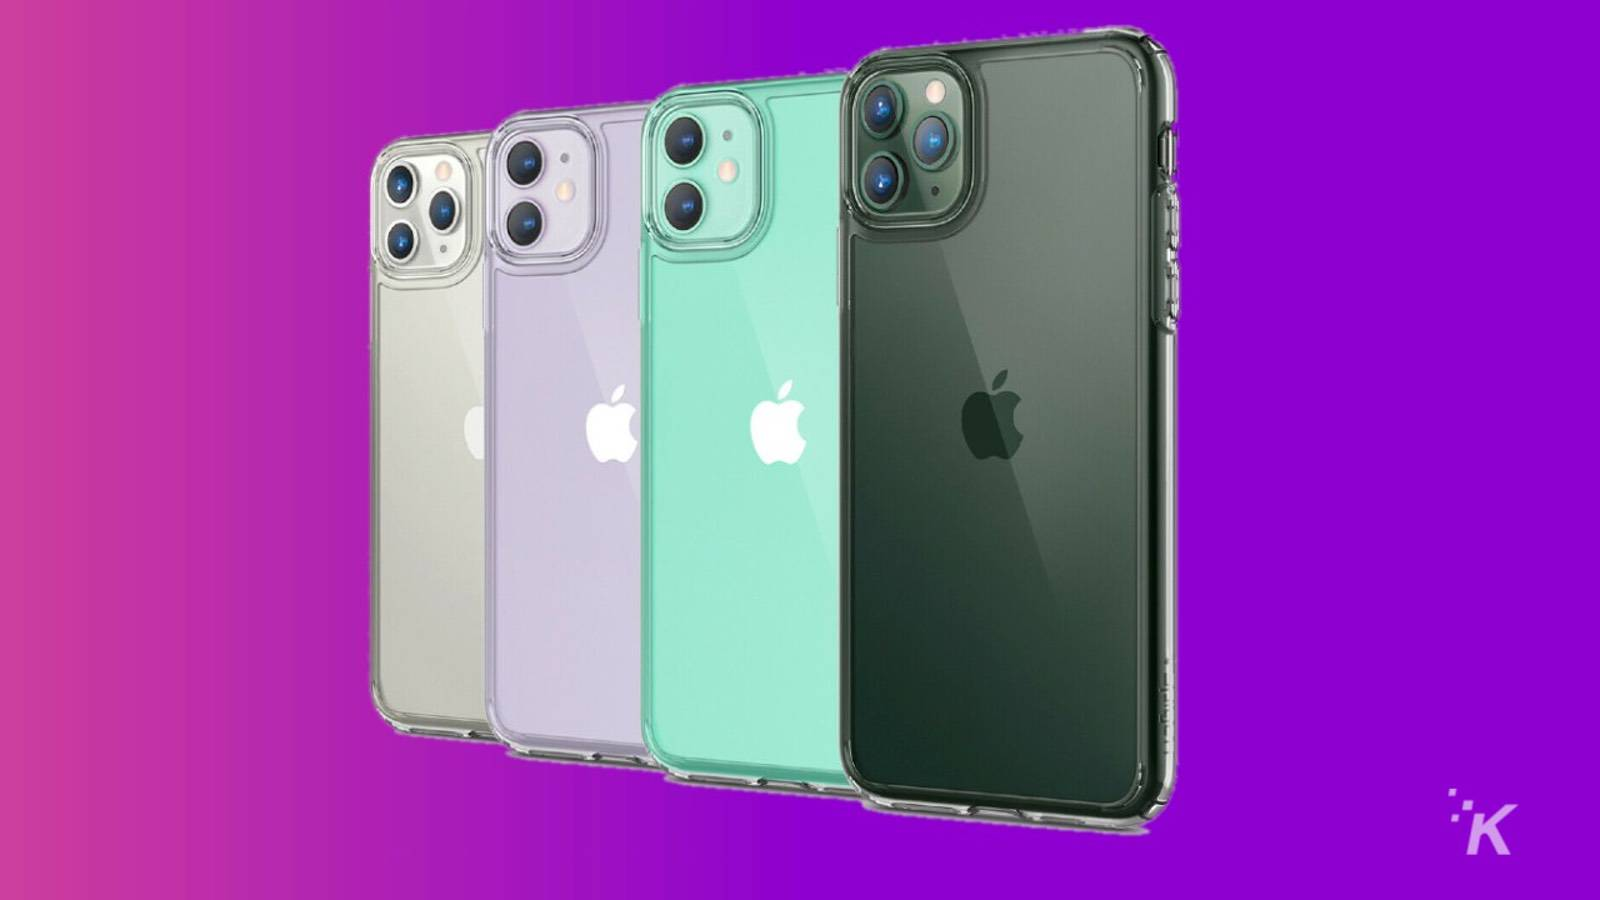 If you just bought an iPhone 11, Pro, or Pro Max – slap this clear case on it for just $10